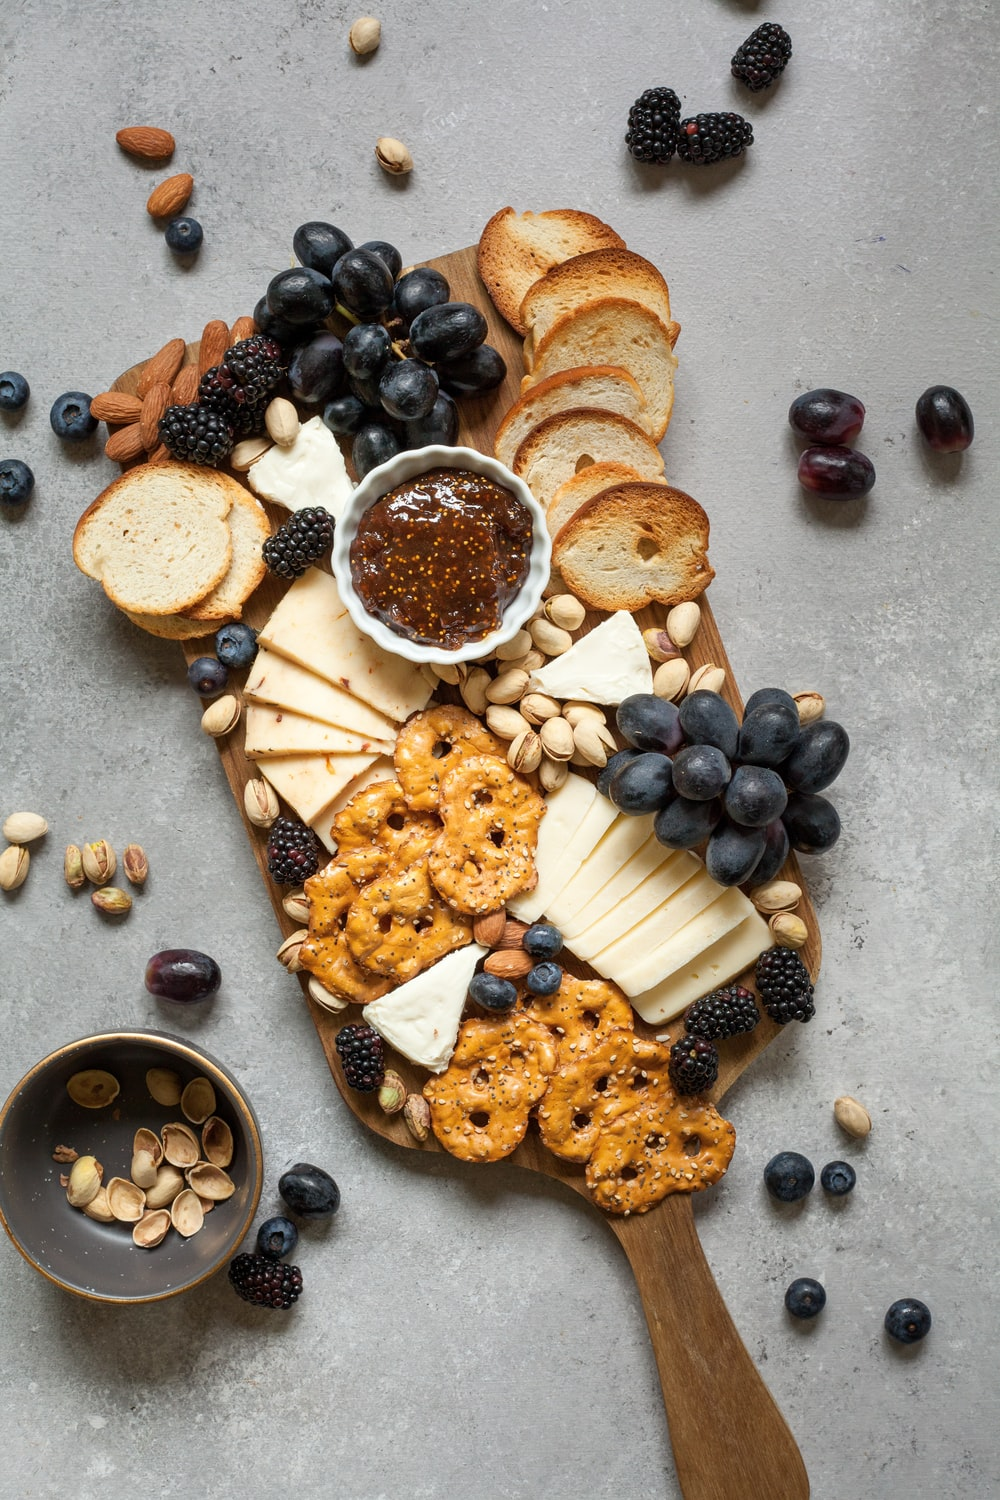 baked breads and cookies on brown wooden board